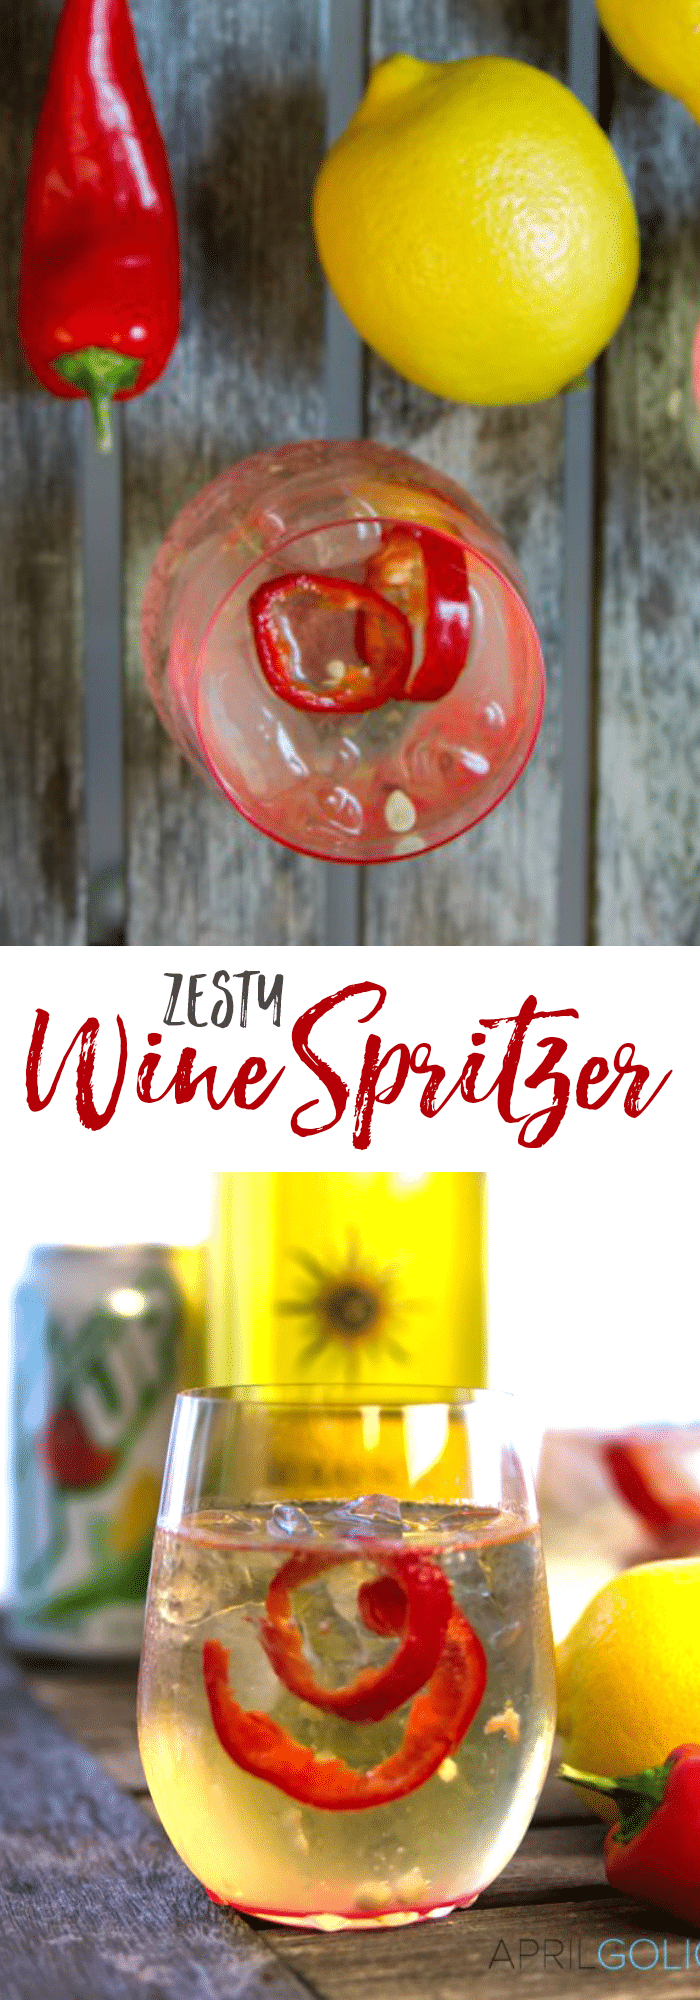 Easy Zesty White Wine Spritzer Recipe with Mirrasou Chardonnay, sprite, red chili peppers, and lemon making it a little spicy